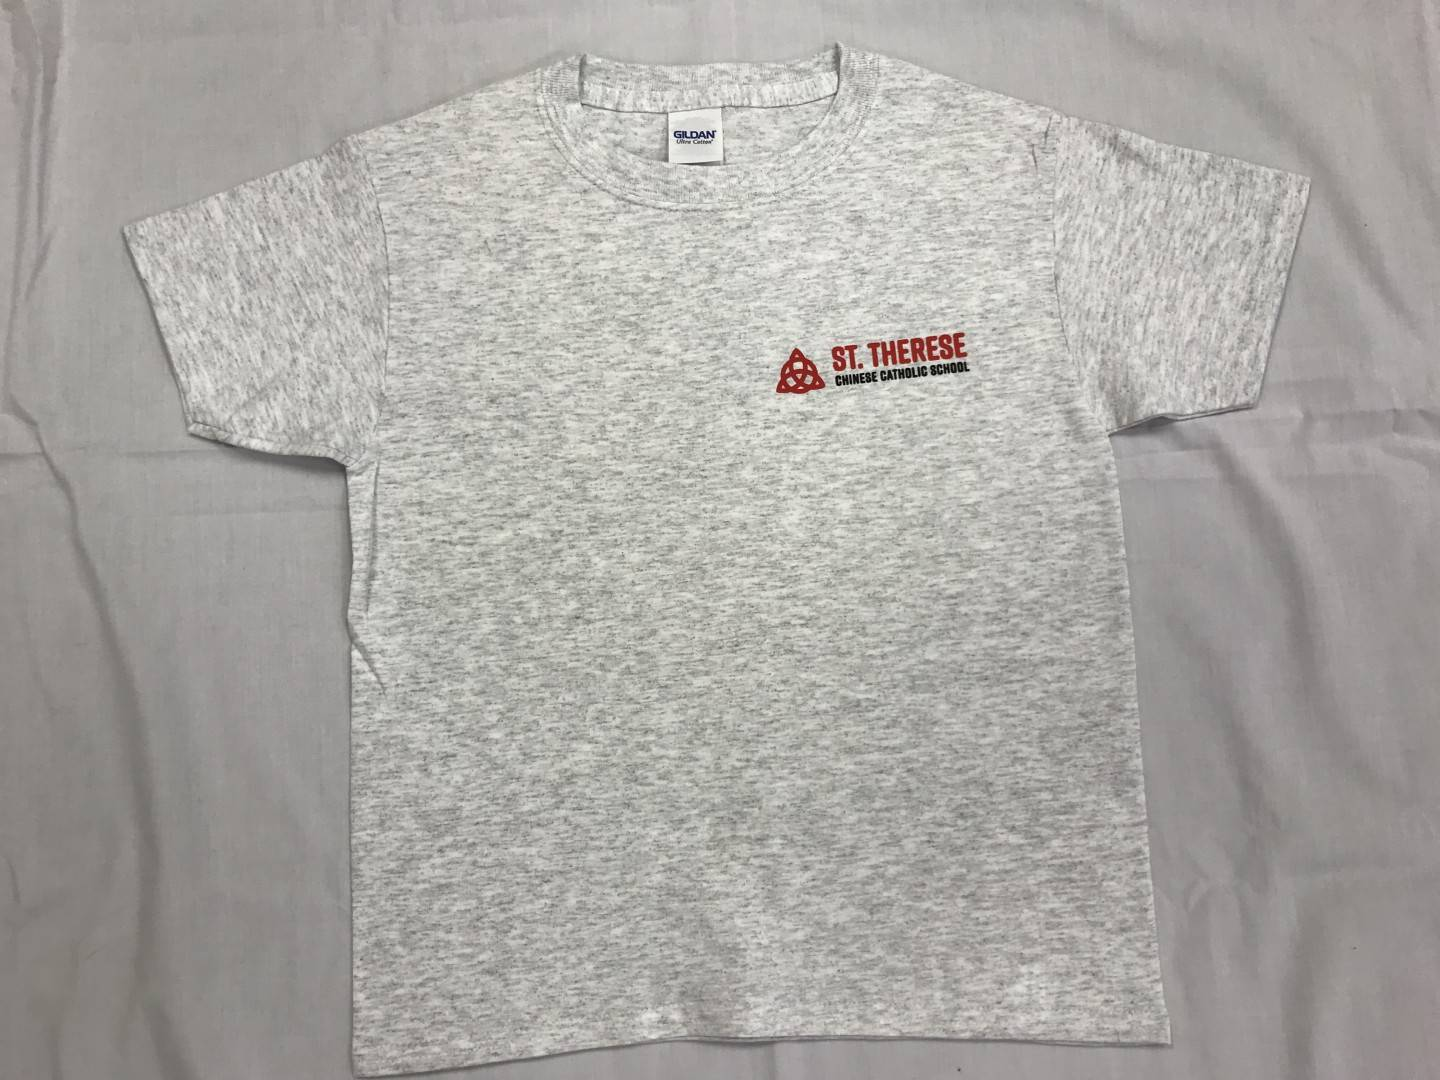 St. ThereseGym T-shirt